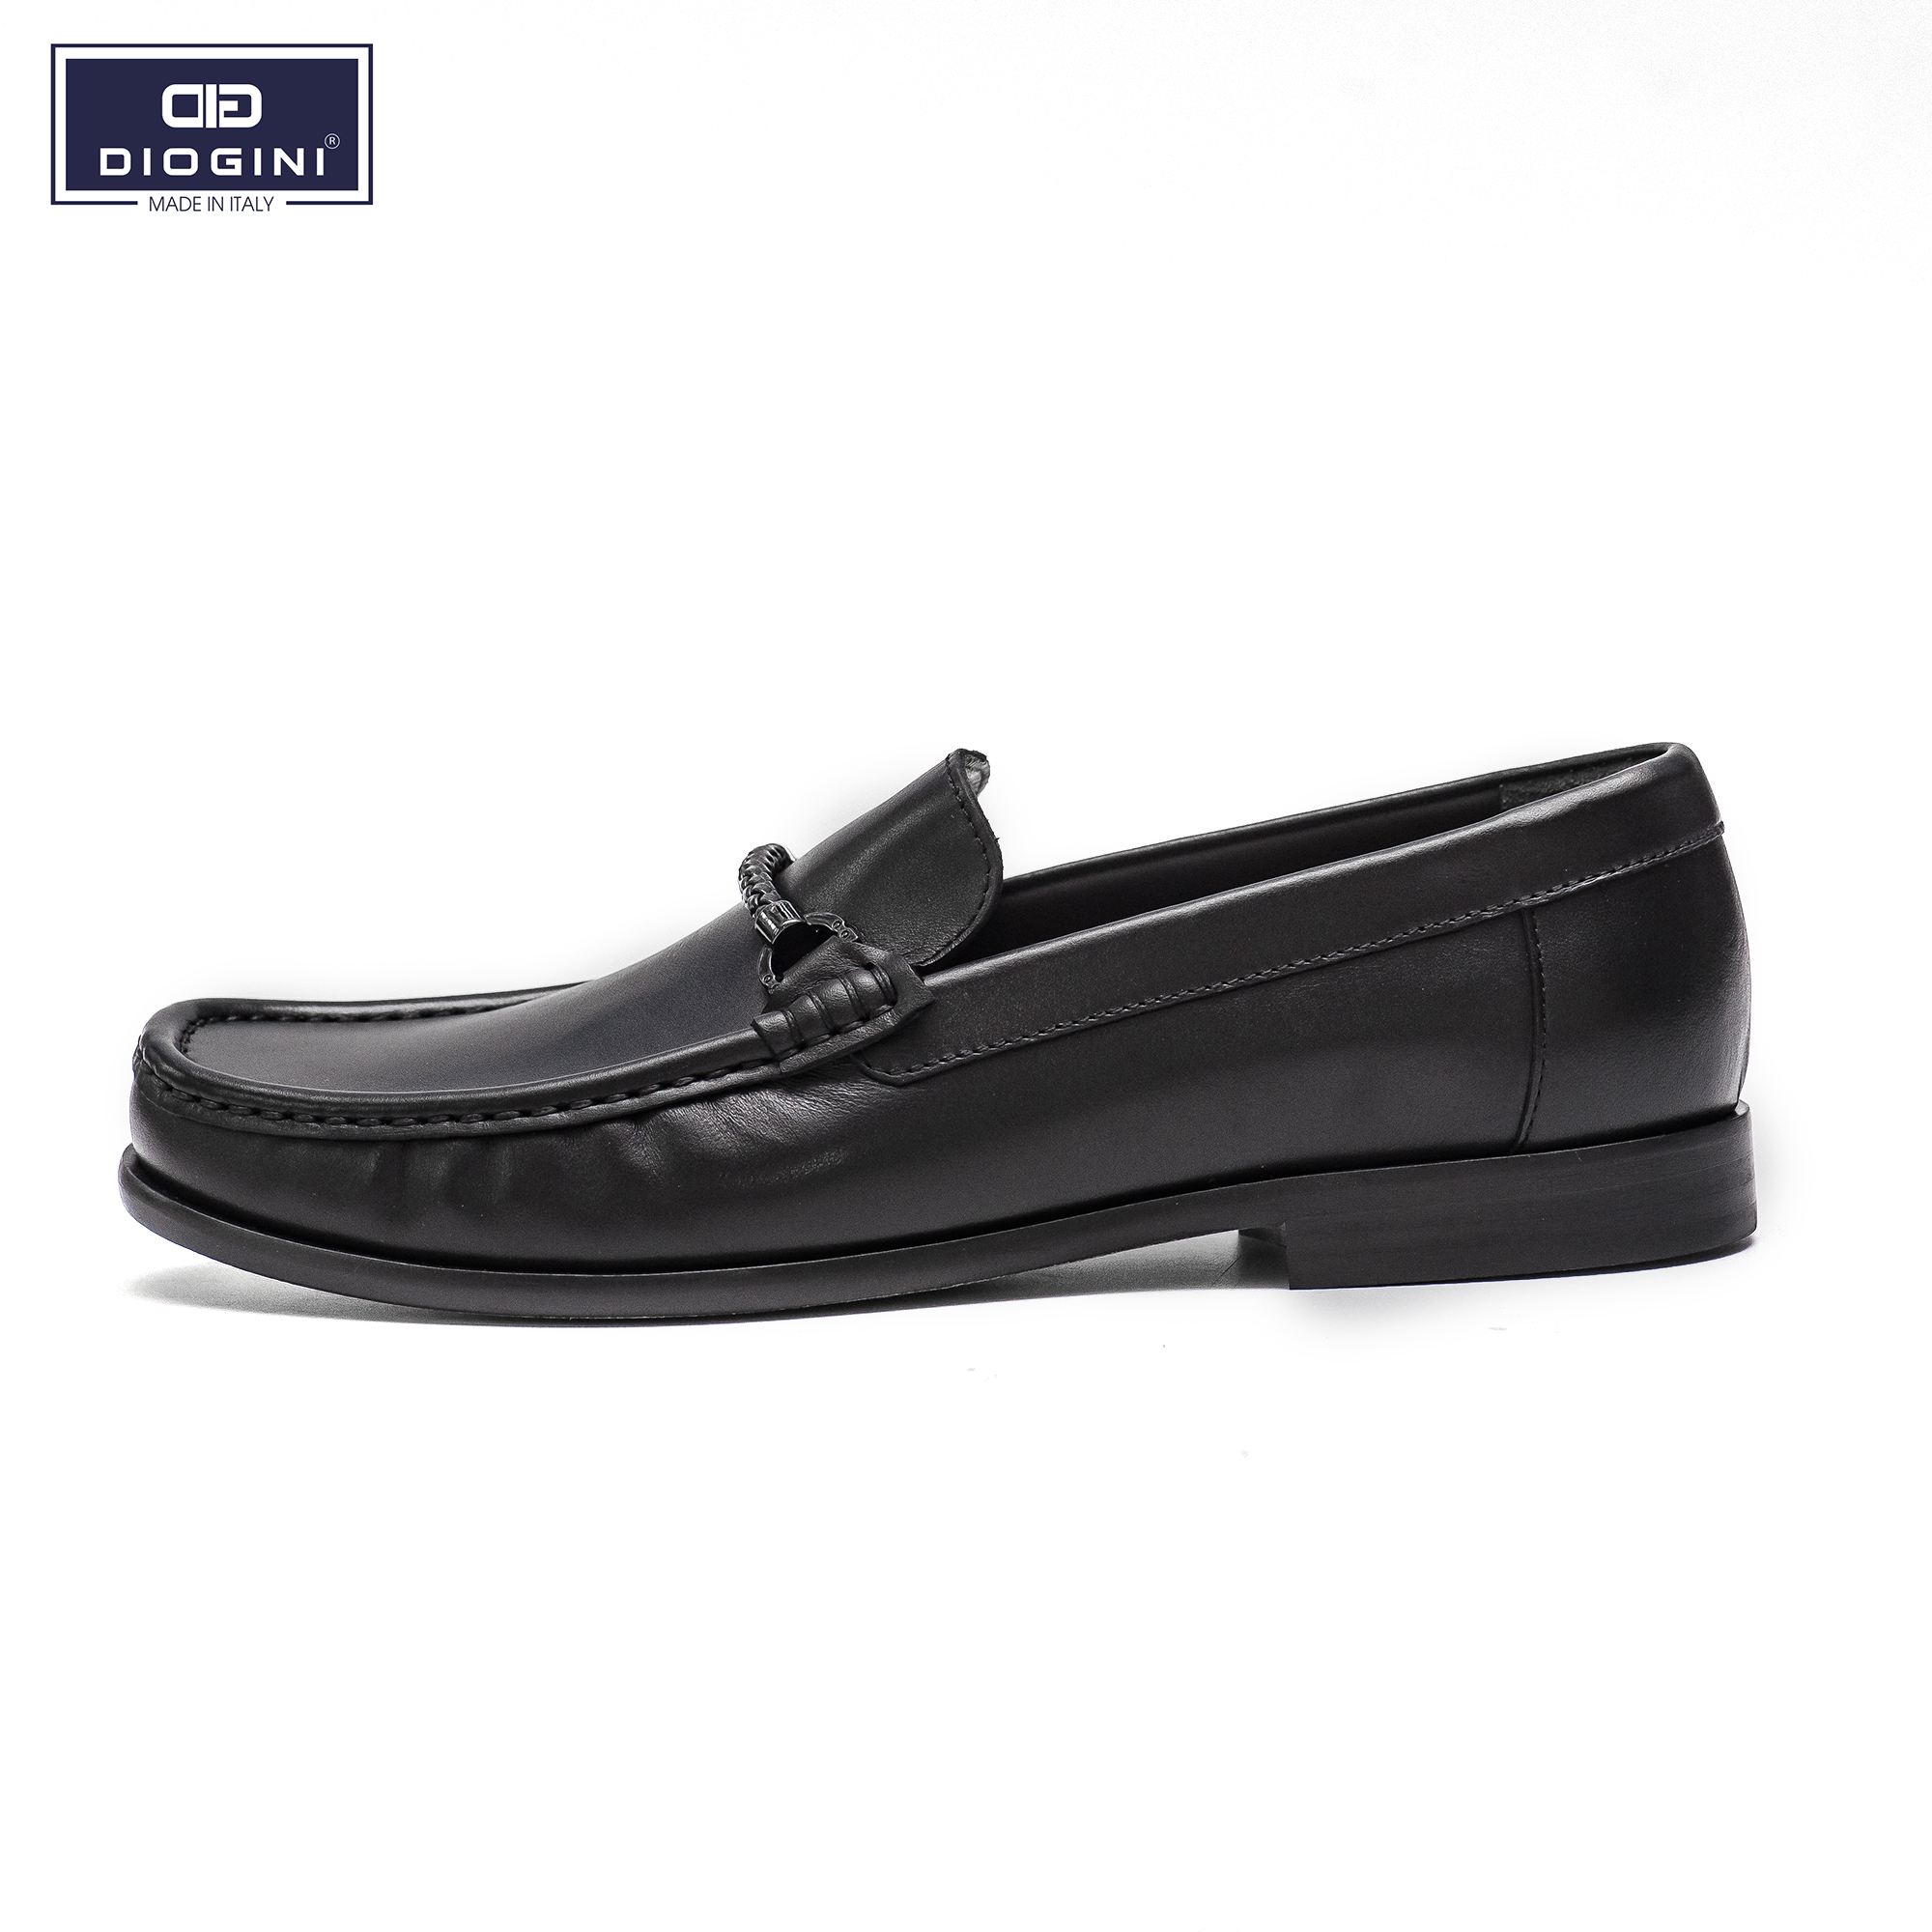 GIÀY DA LOAFER NAM CAO CẤP MADE IN ITALY MORELLI 10458N